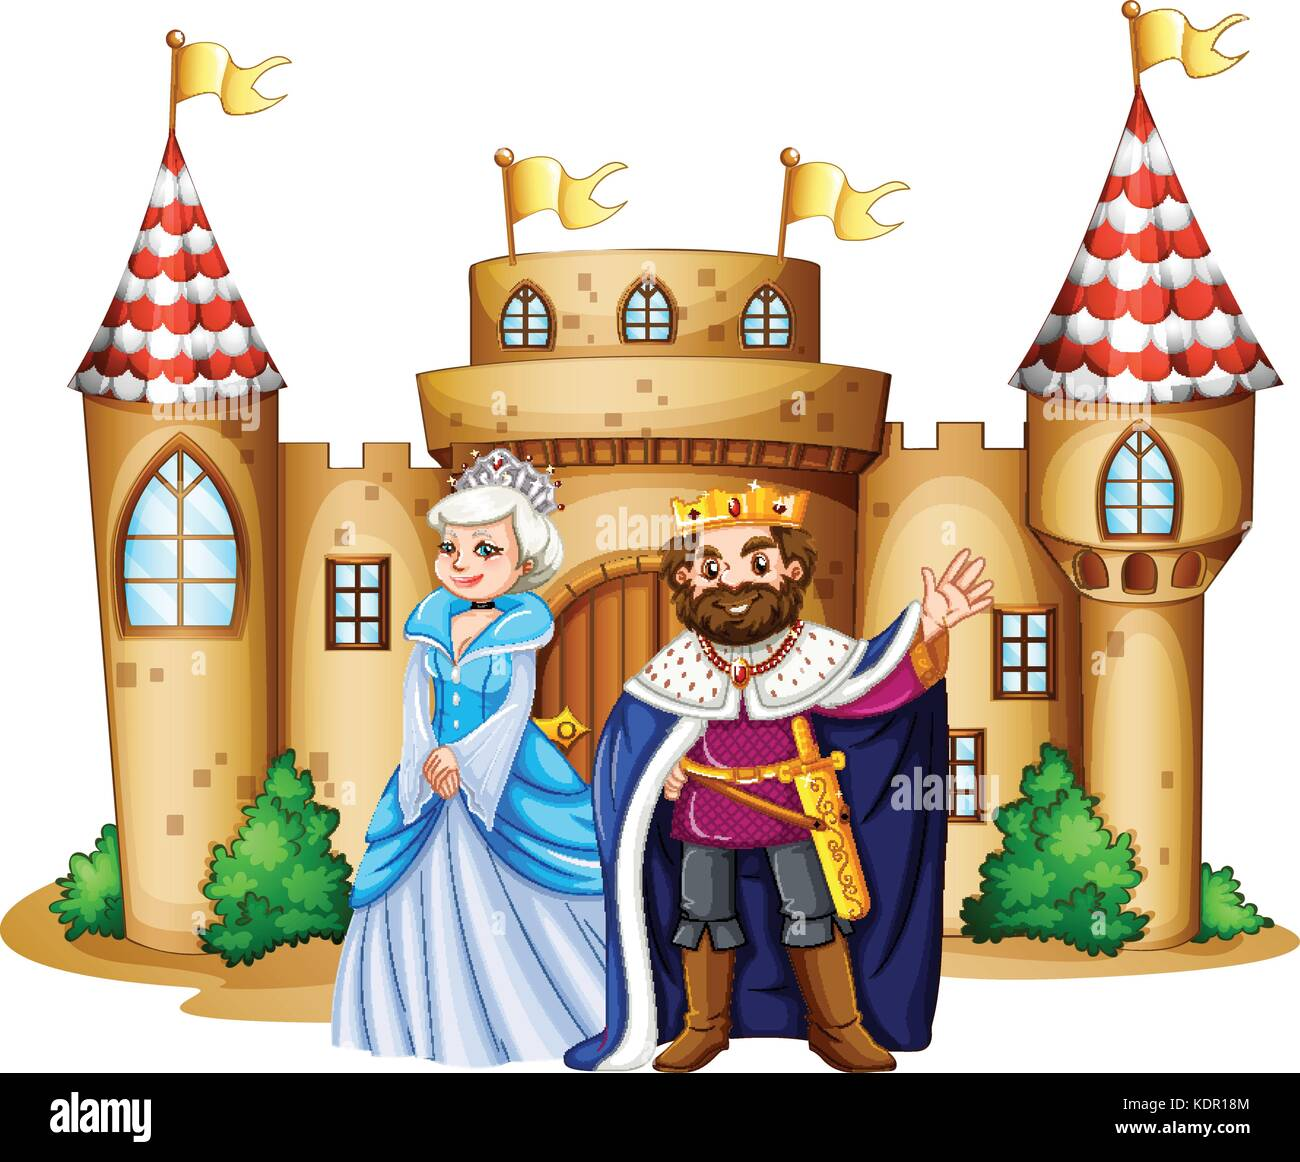 king and queen at the castle illustration stock vector art rh alamy com king and queen crowns clipart homecoming king and queen clipart